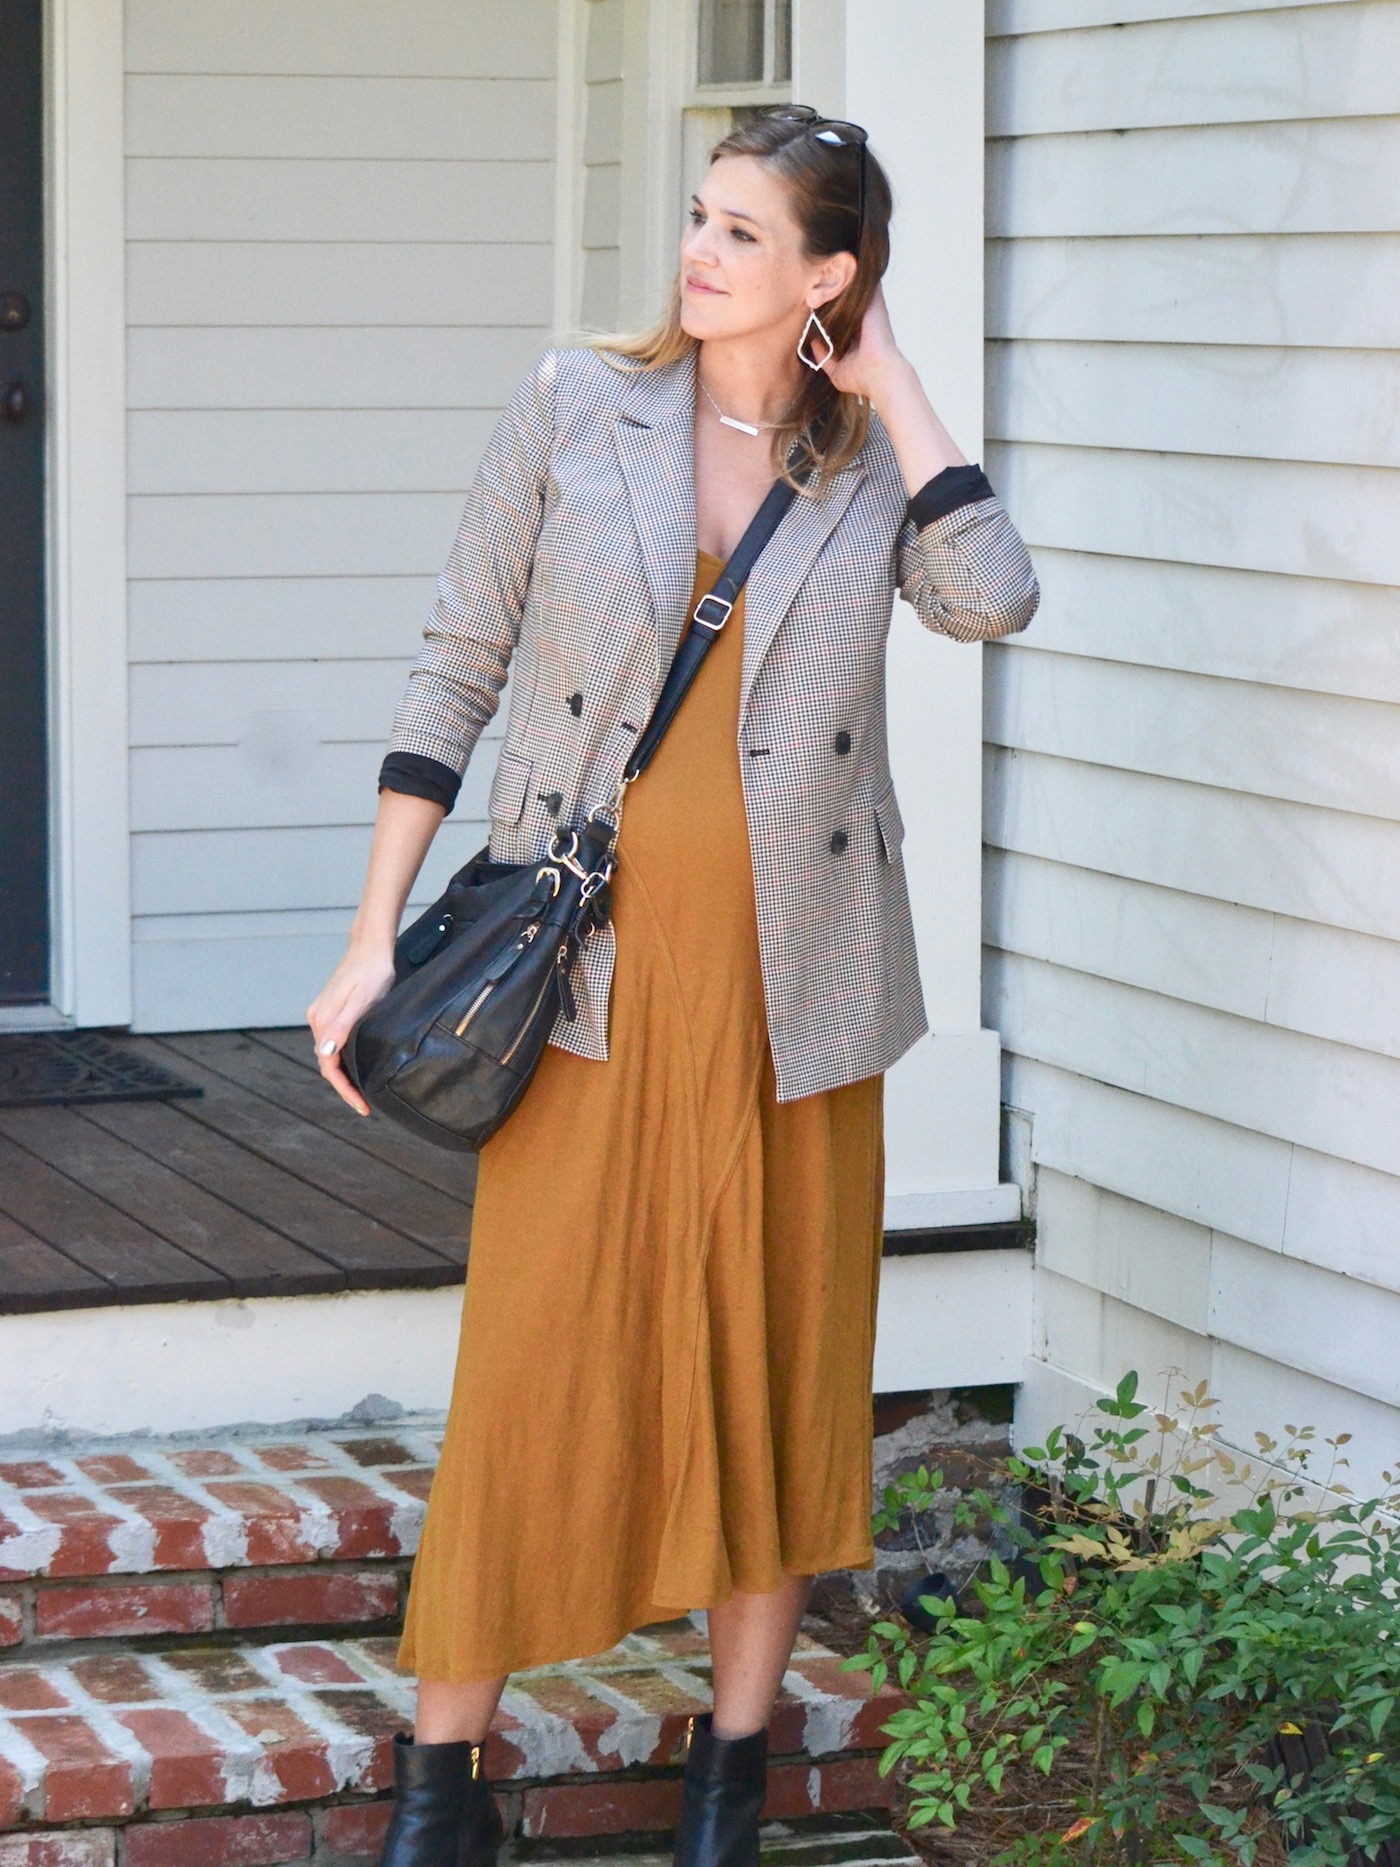 Third trimester fall style // www.thehiveblog.com